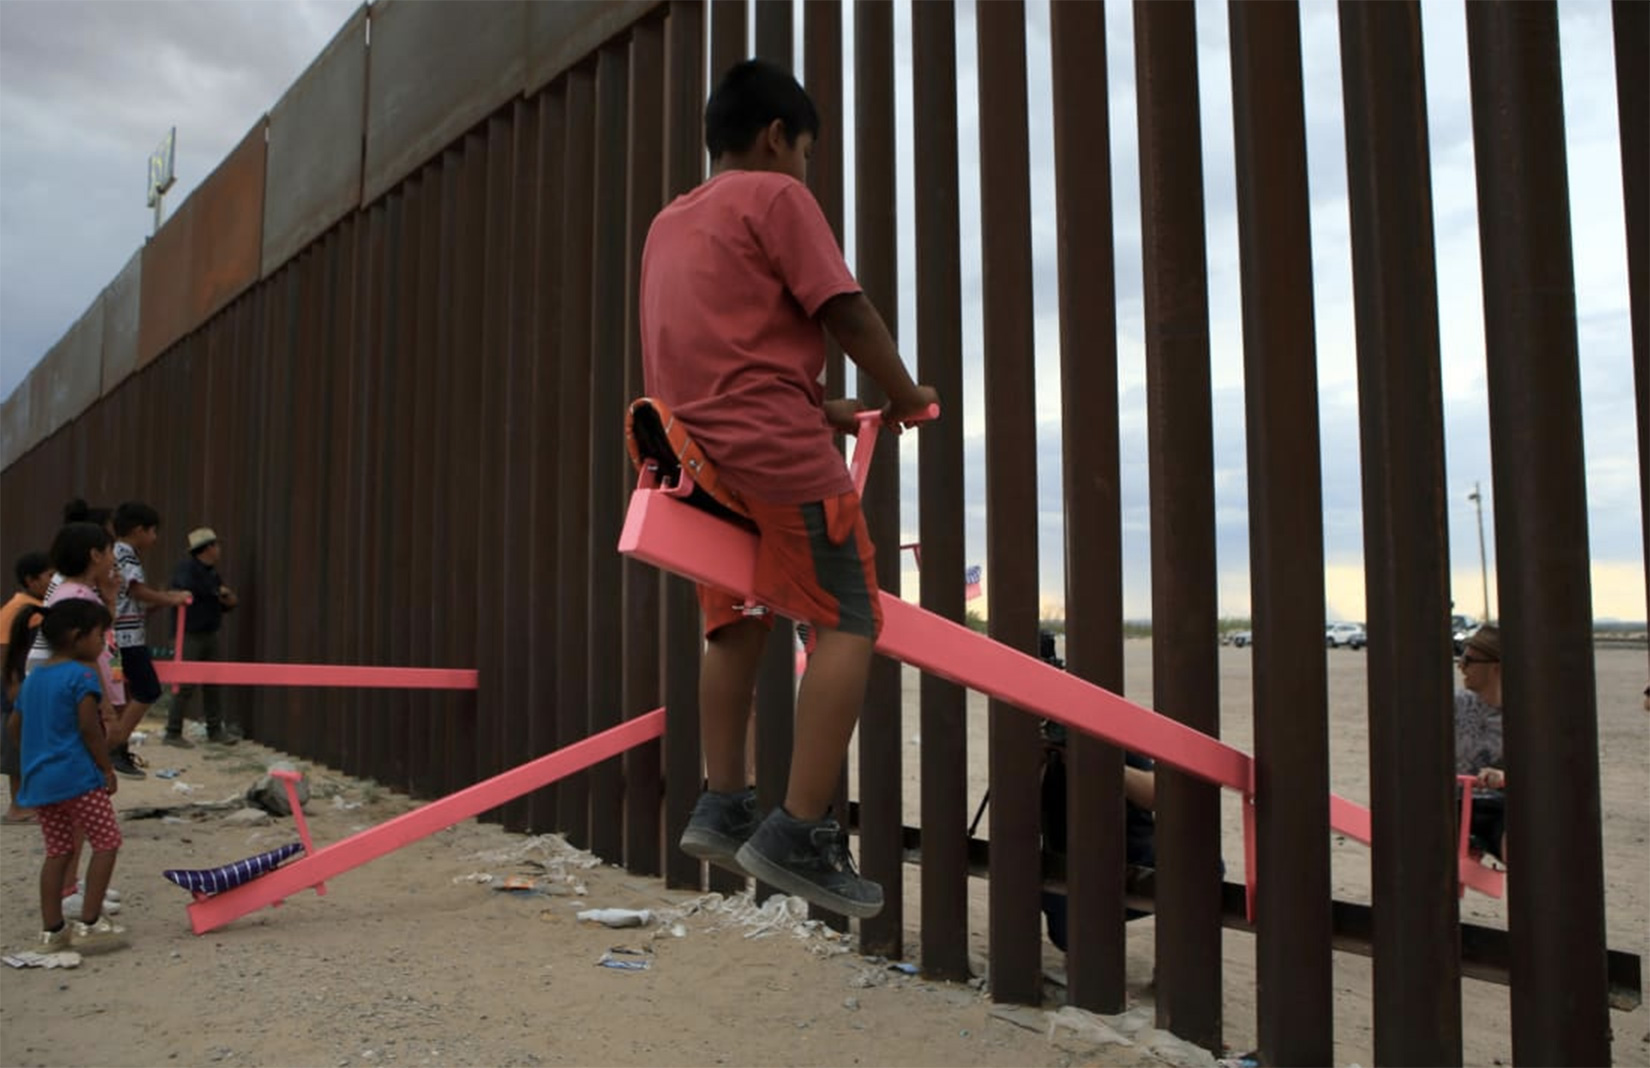 Teeter-Totter Wall - a see-saw installation at the US-Mexico border by studio Rael San Fratello. The temporary interactive installation was awarded the 2020 Beazley Design of the Year. Photography: Luis Torres